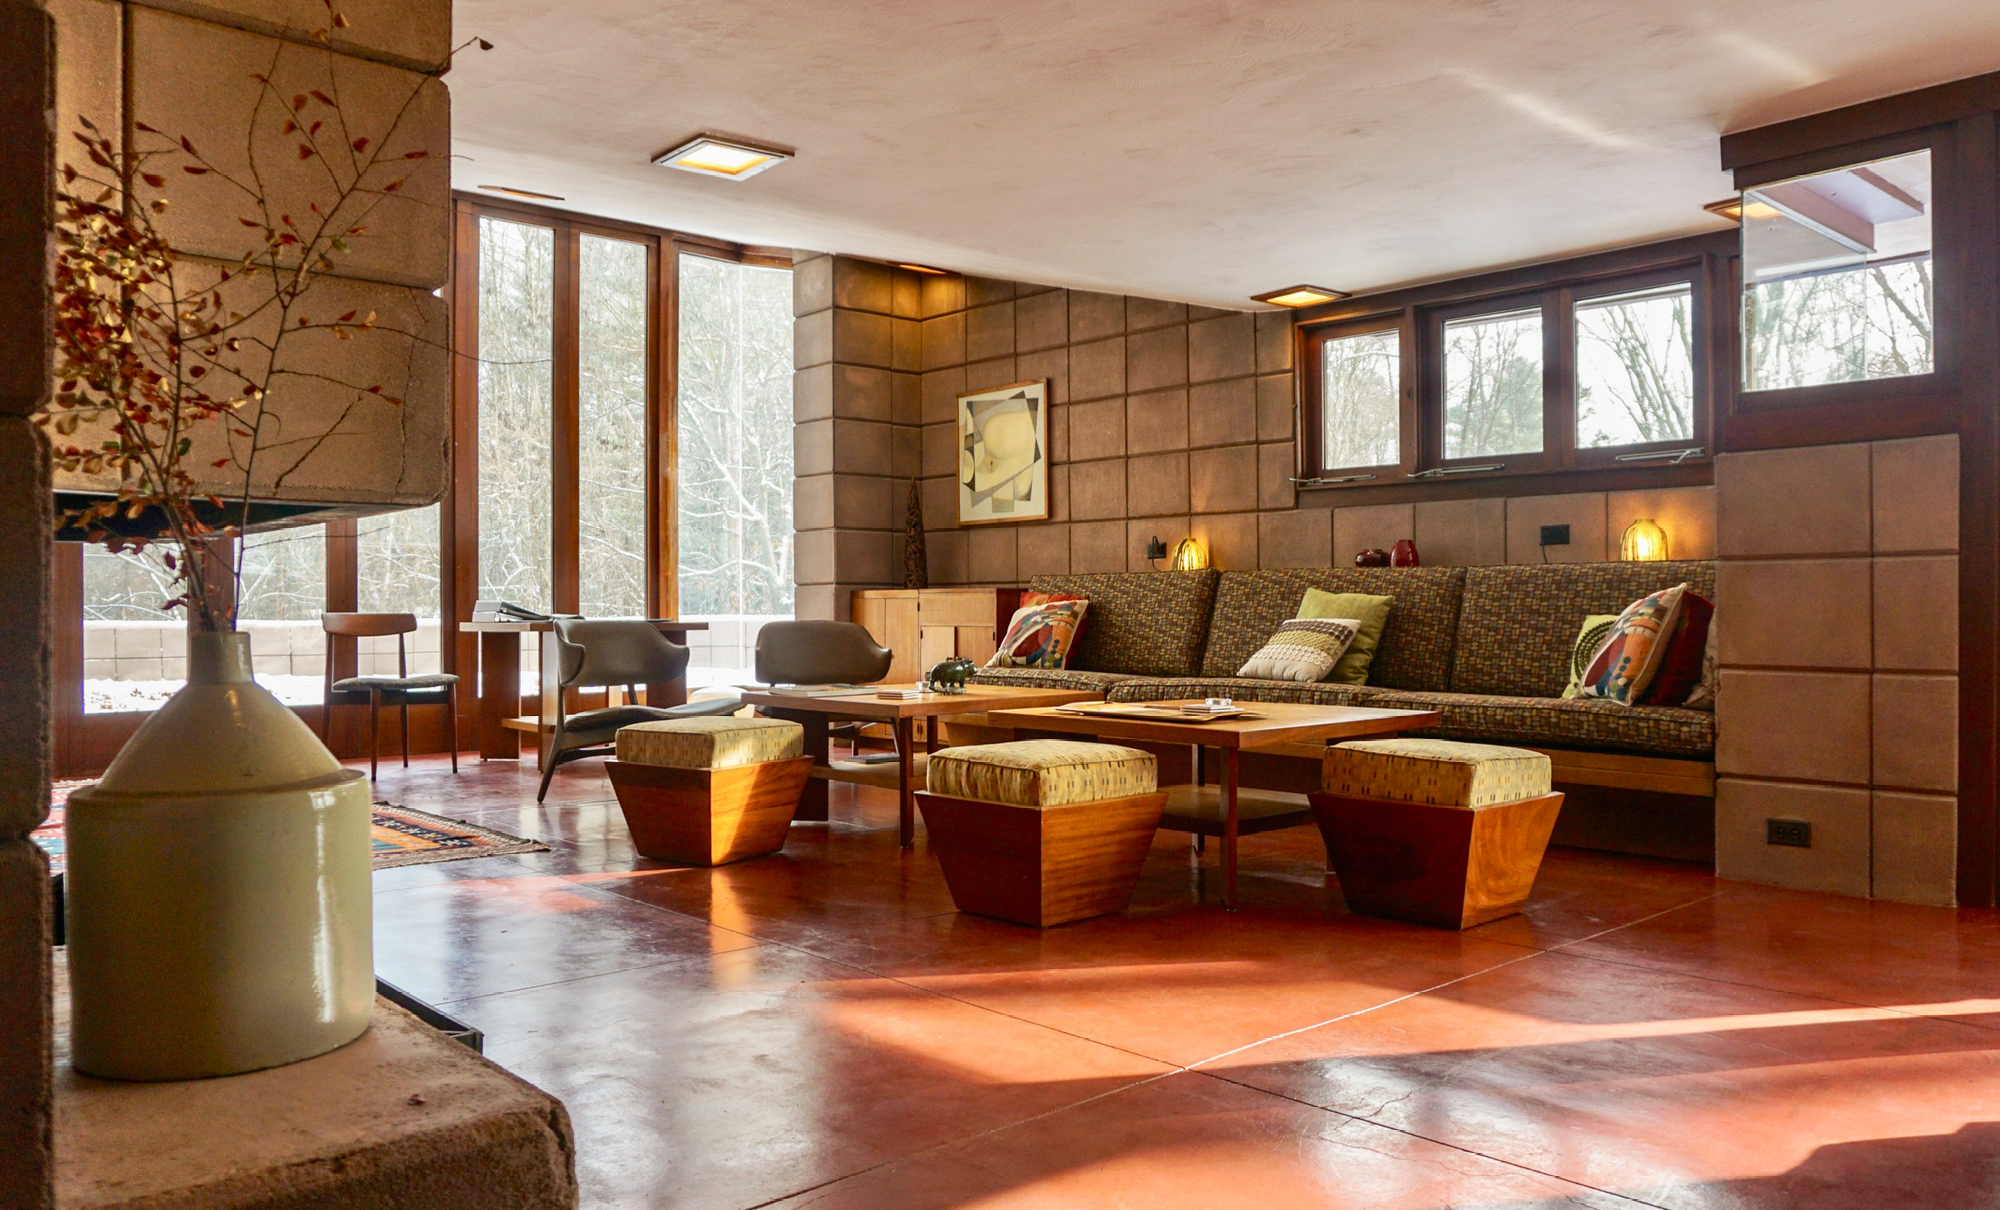 Eppstein House by Frank Lloyd Wright in Galesburg, Michigan, USA